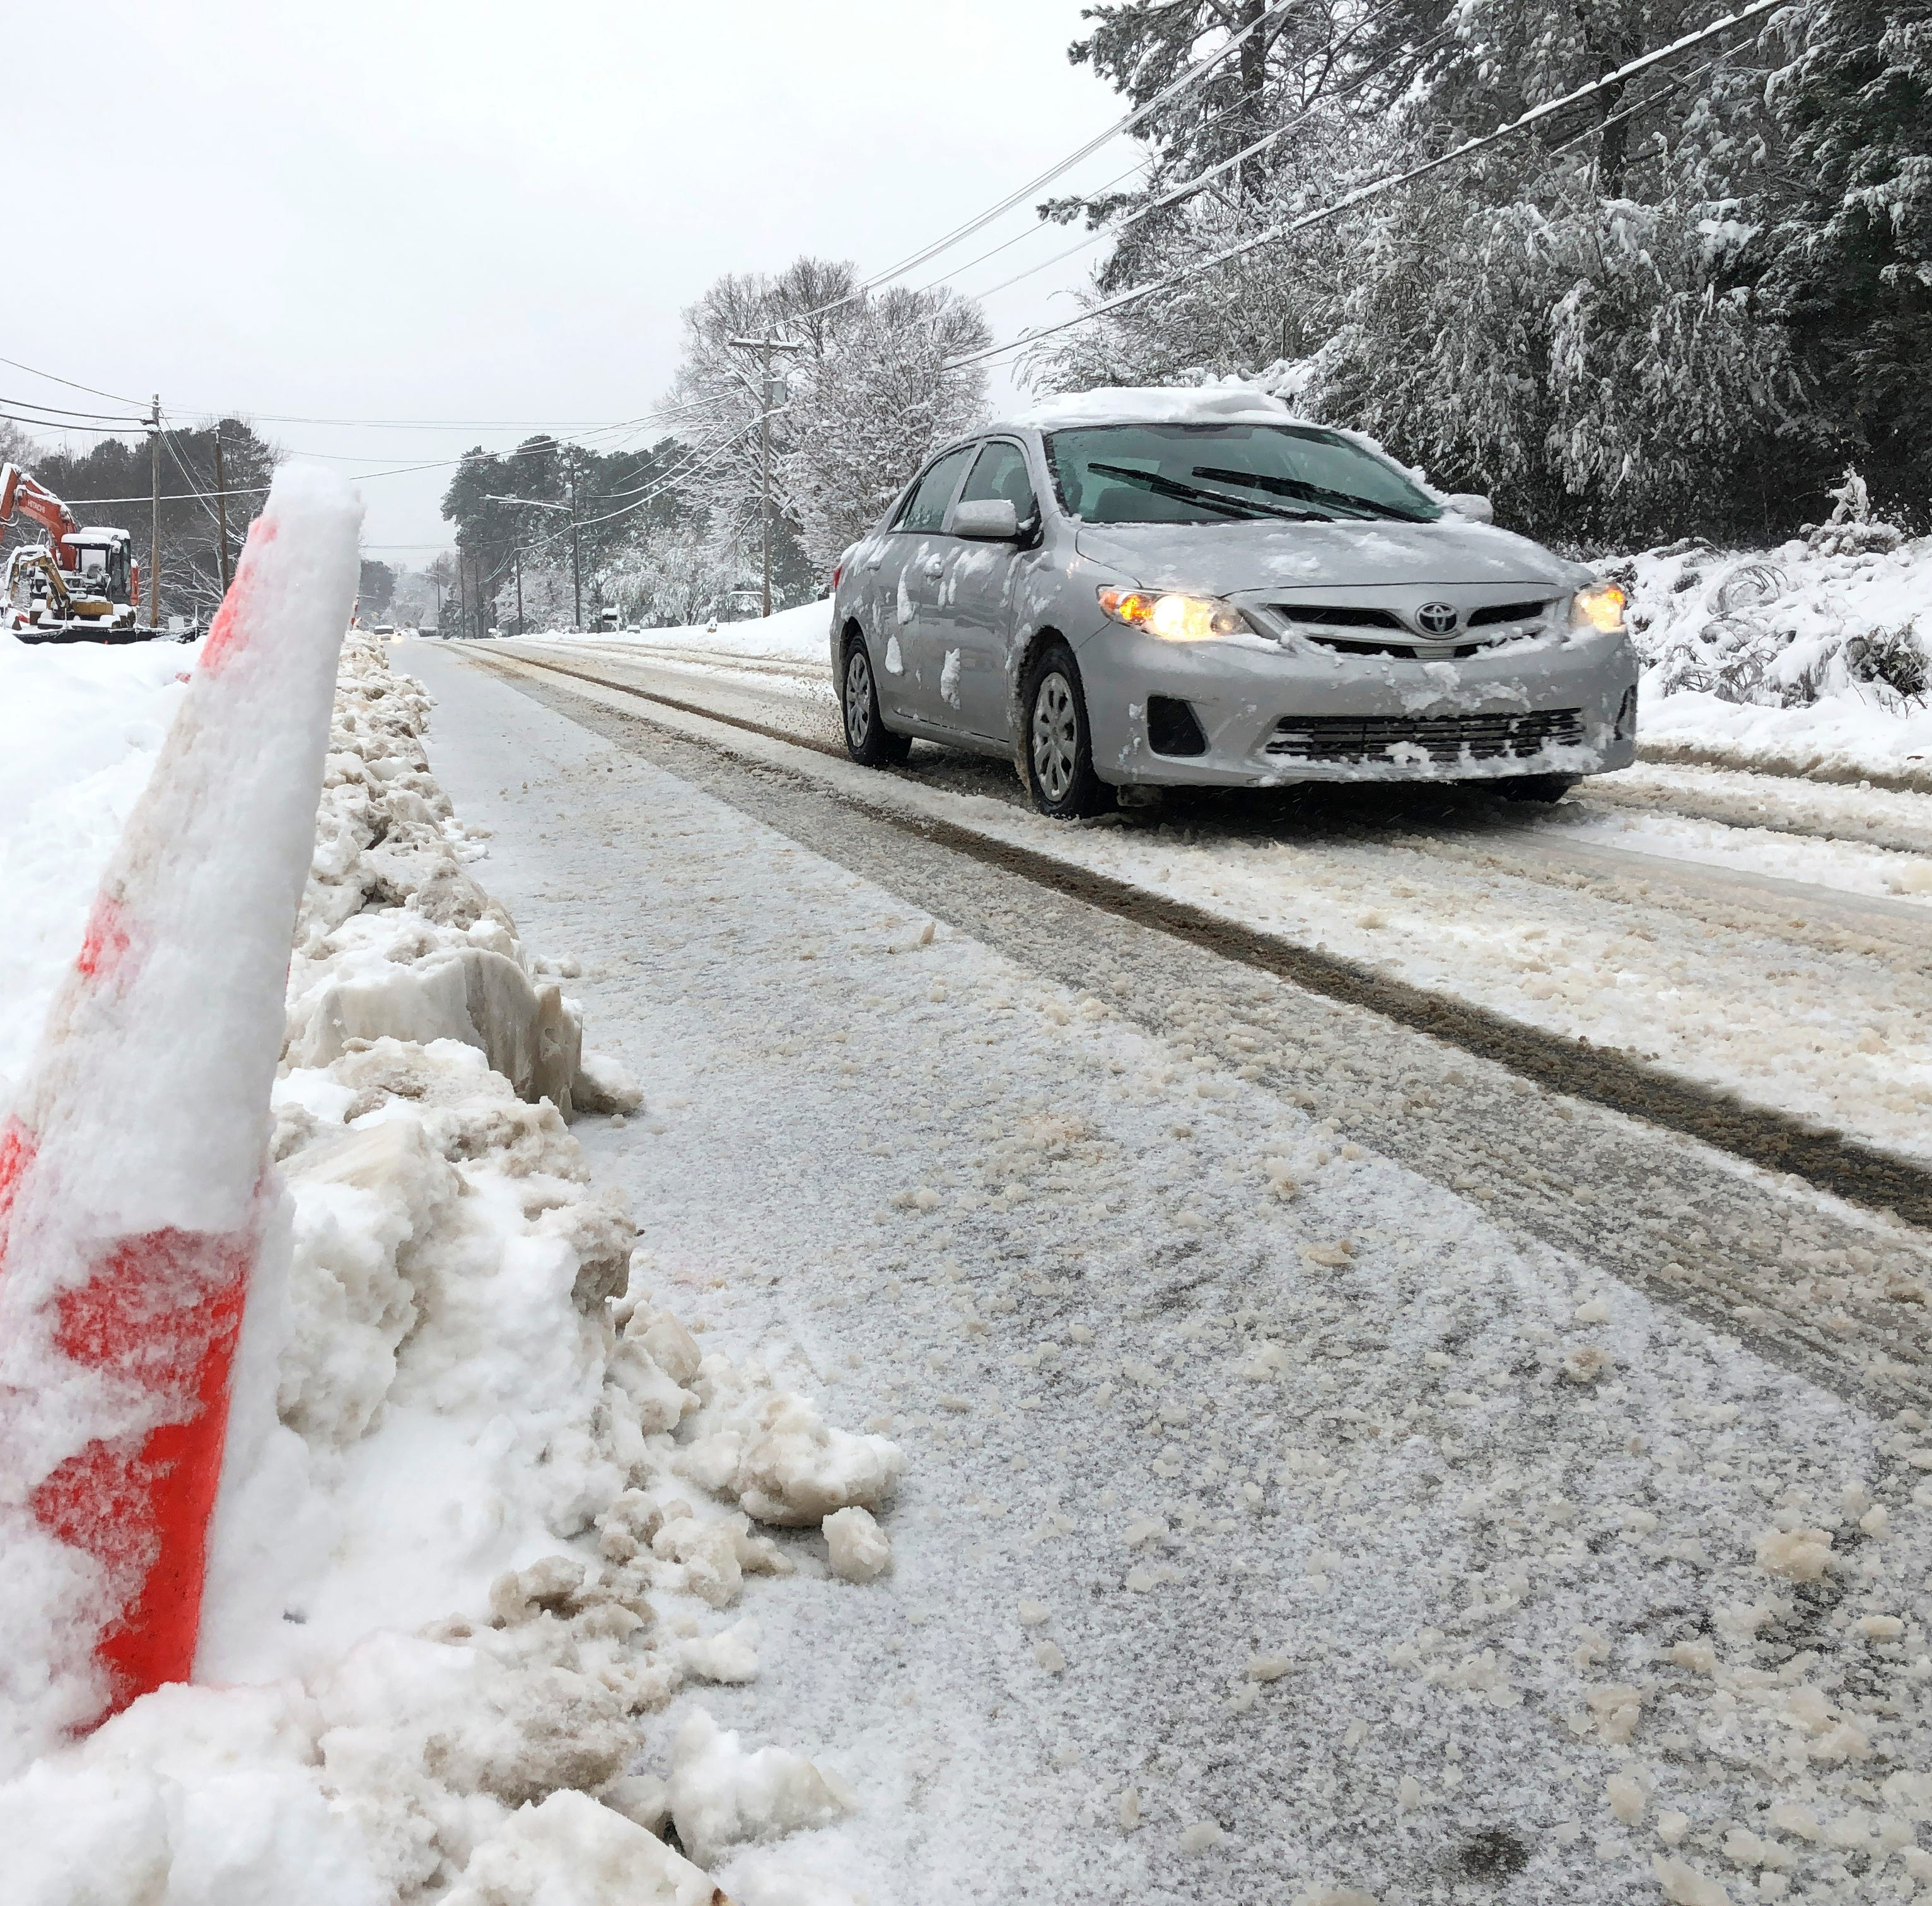 'It's serious': Winter storm brings havoc to Southeast